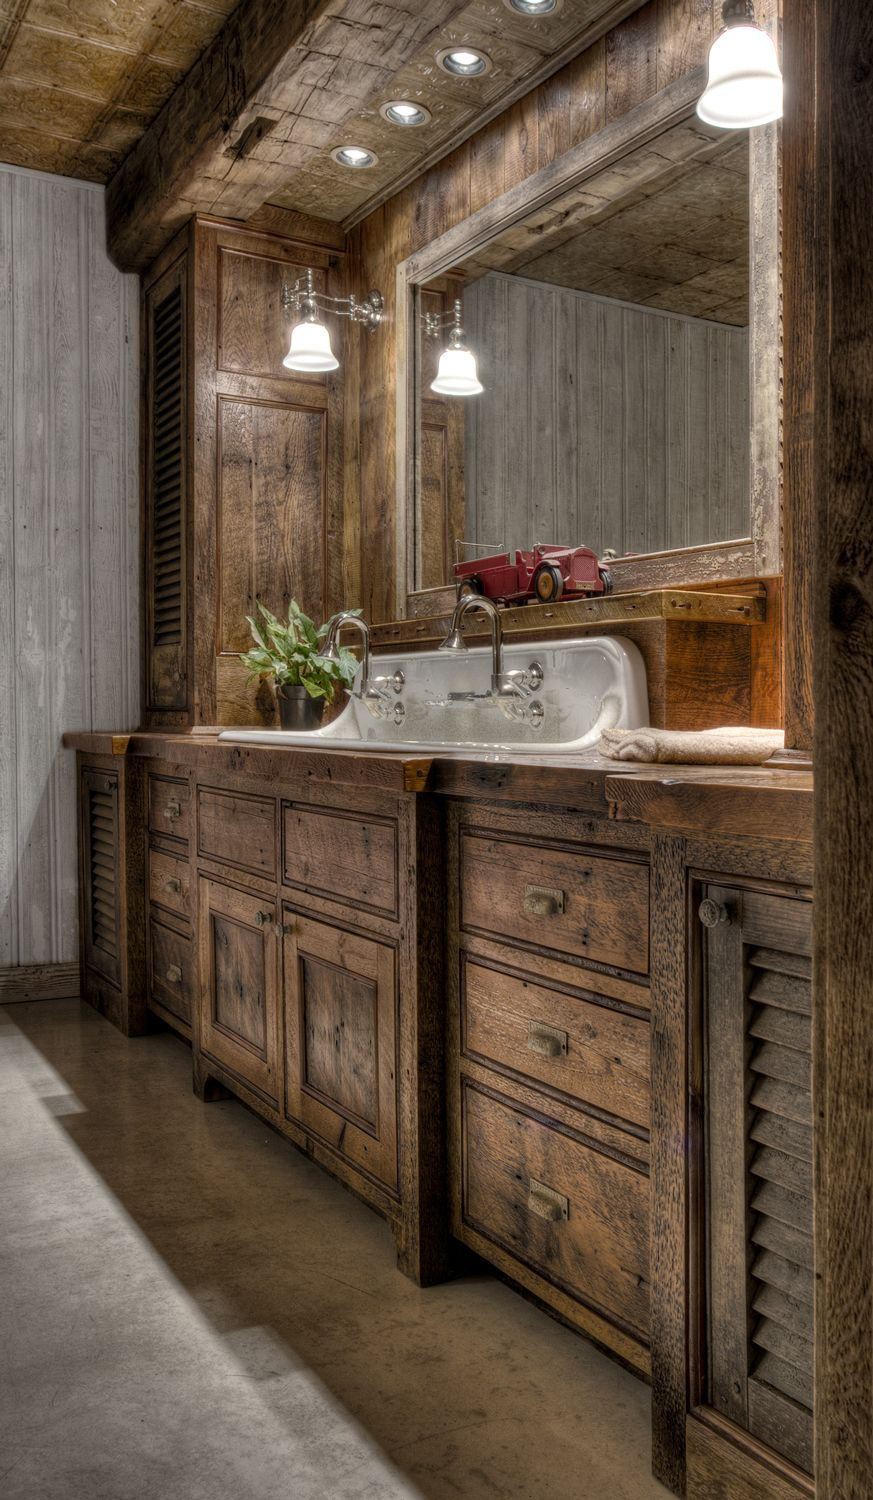 30 rustic bathroom vanity ideas that are on another level on rustic bathroom designs photos id=53488